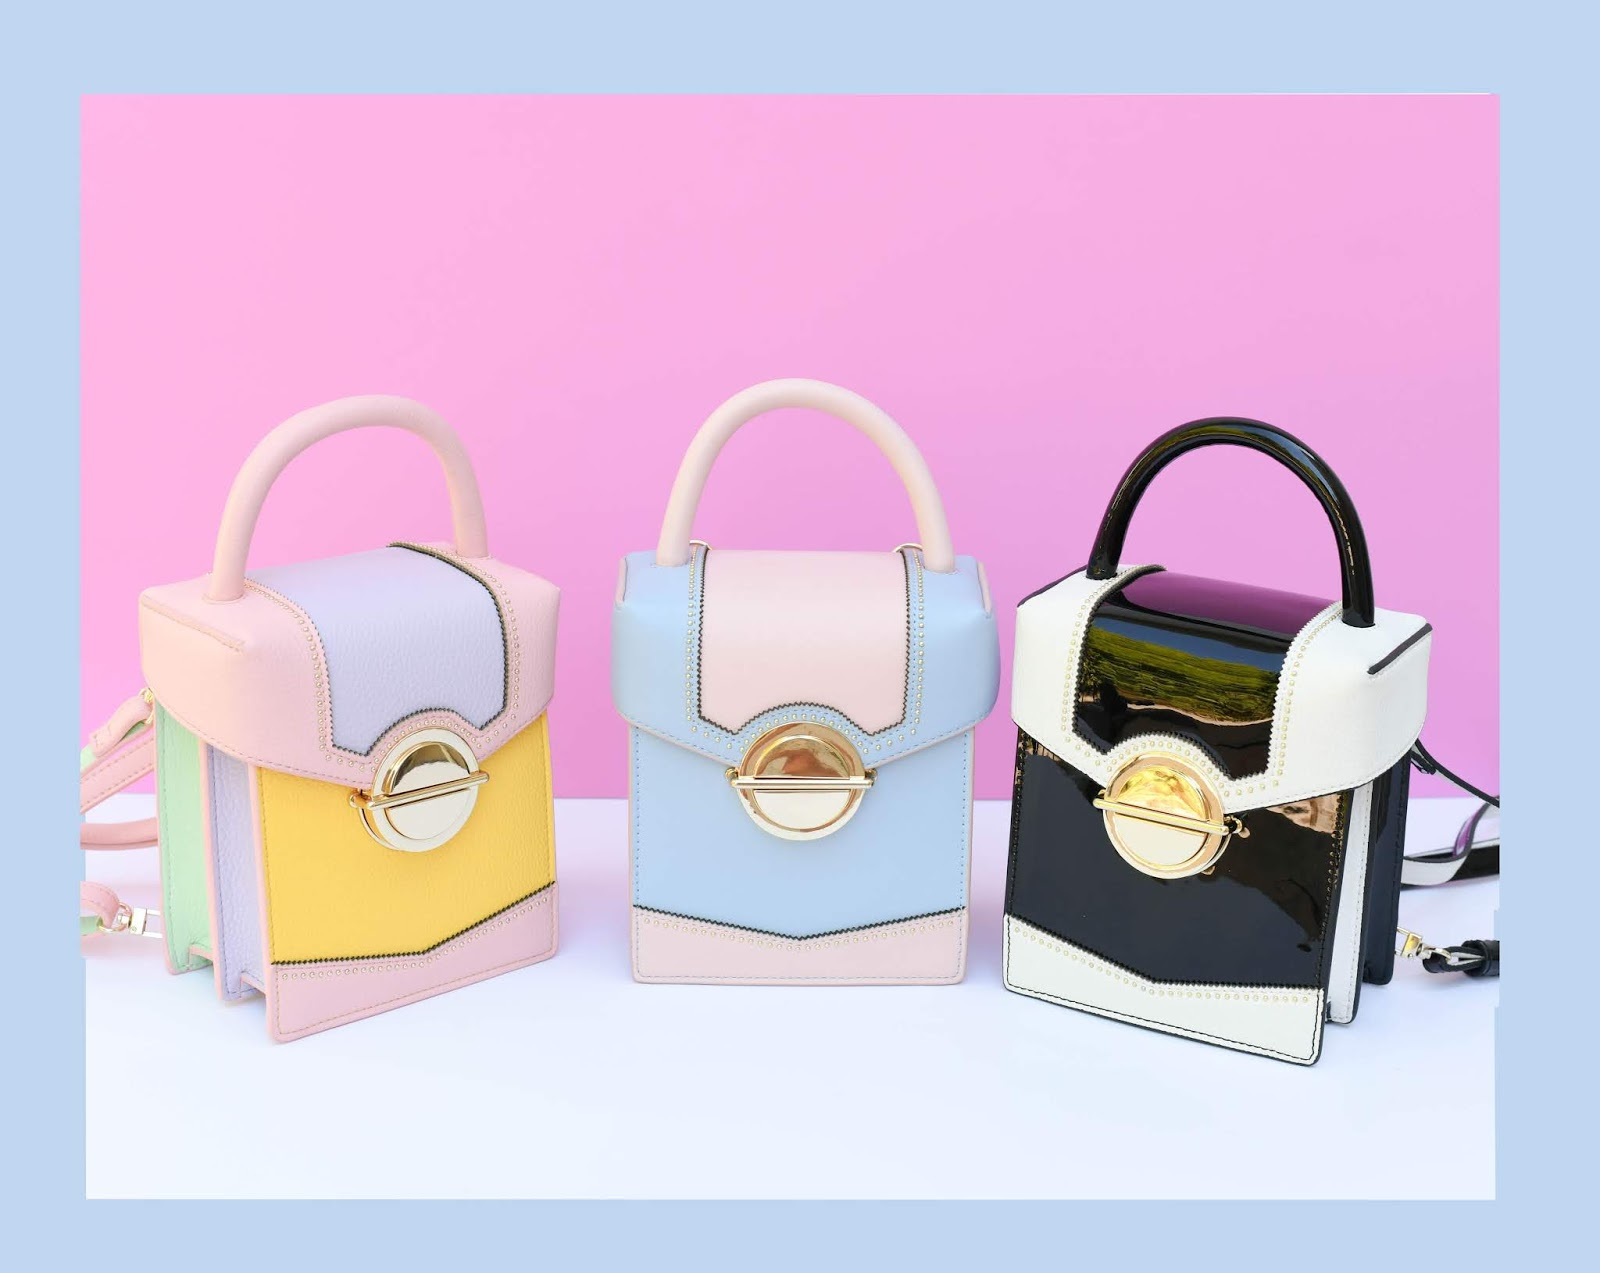 House of Want x A Fashion Nerd Non Leather Mini Box Bags Launch